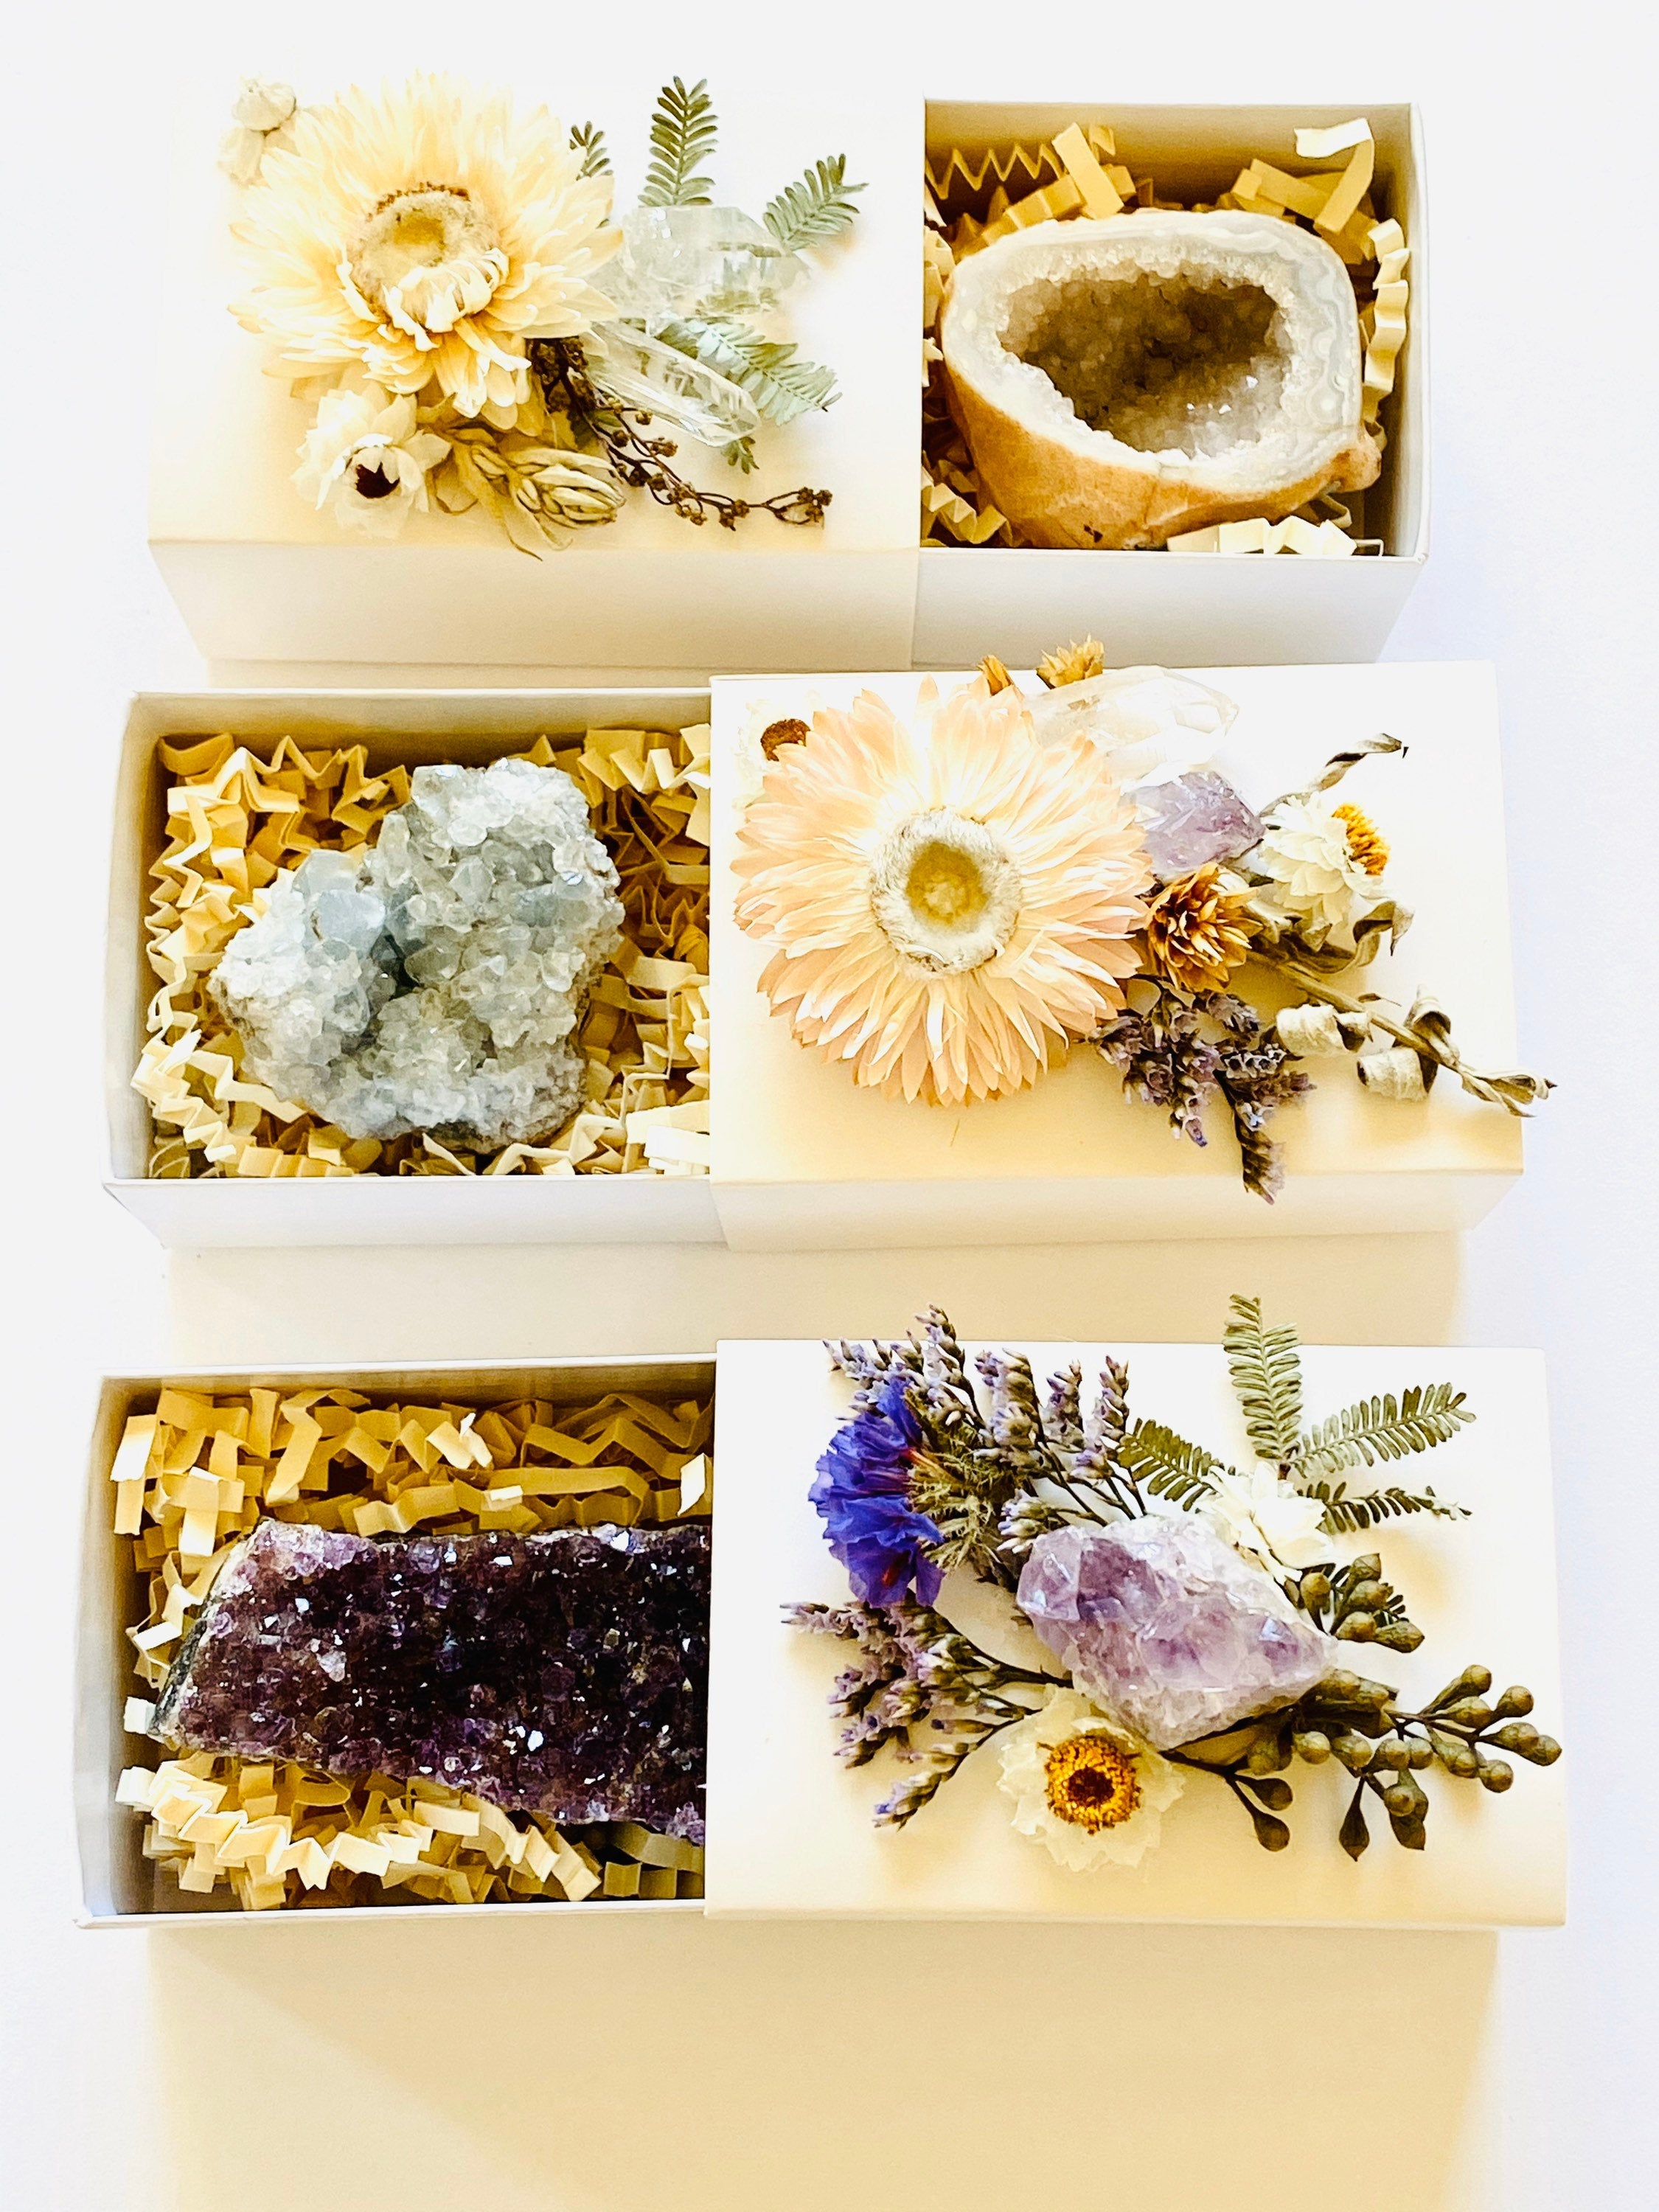 Crystal Gift Box, Geode Crystal Gift Box, Get Well Soon Crystal Gift Box, Self Care Package, Wellness Crystal Gift Box, Aragonite